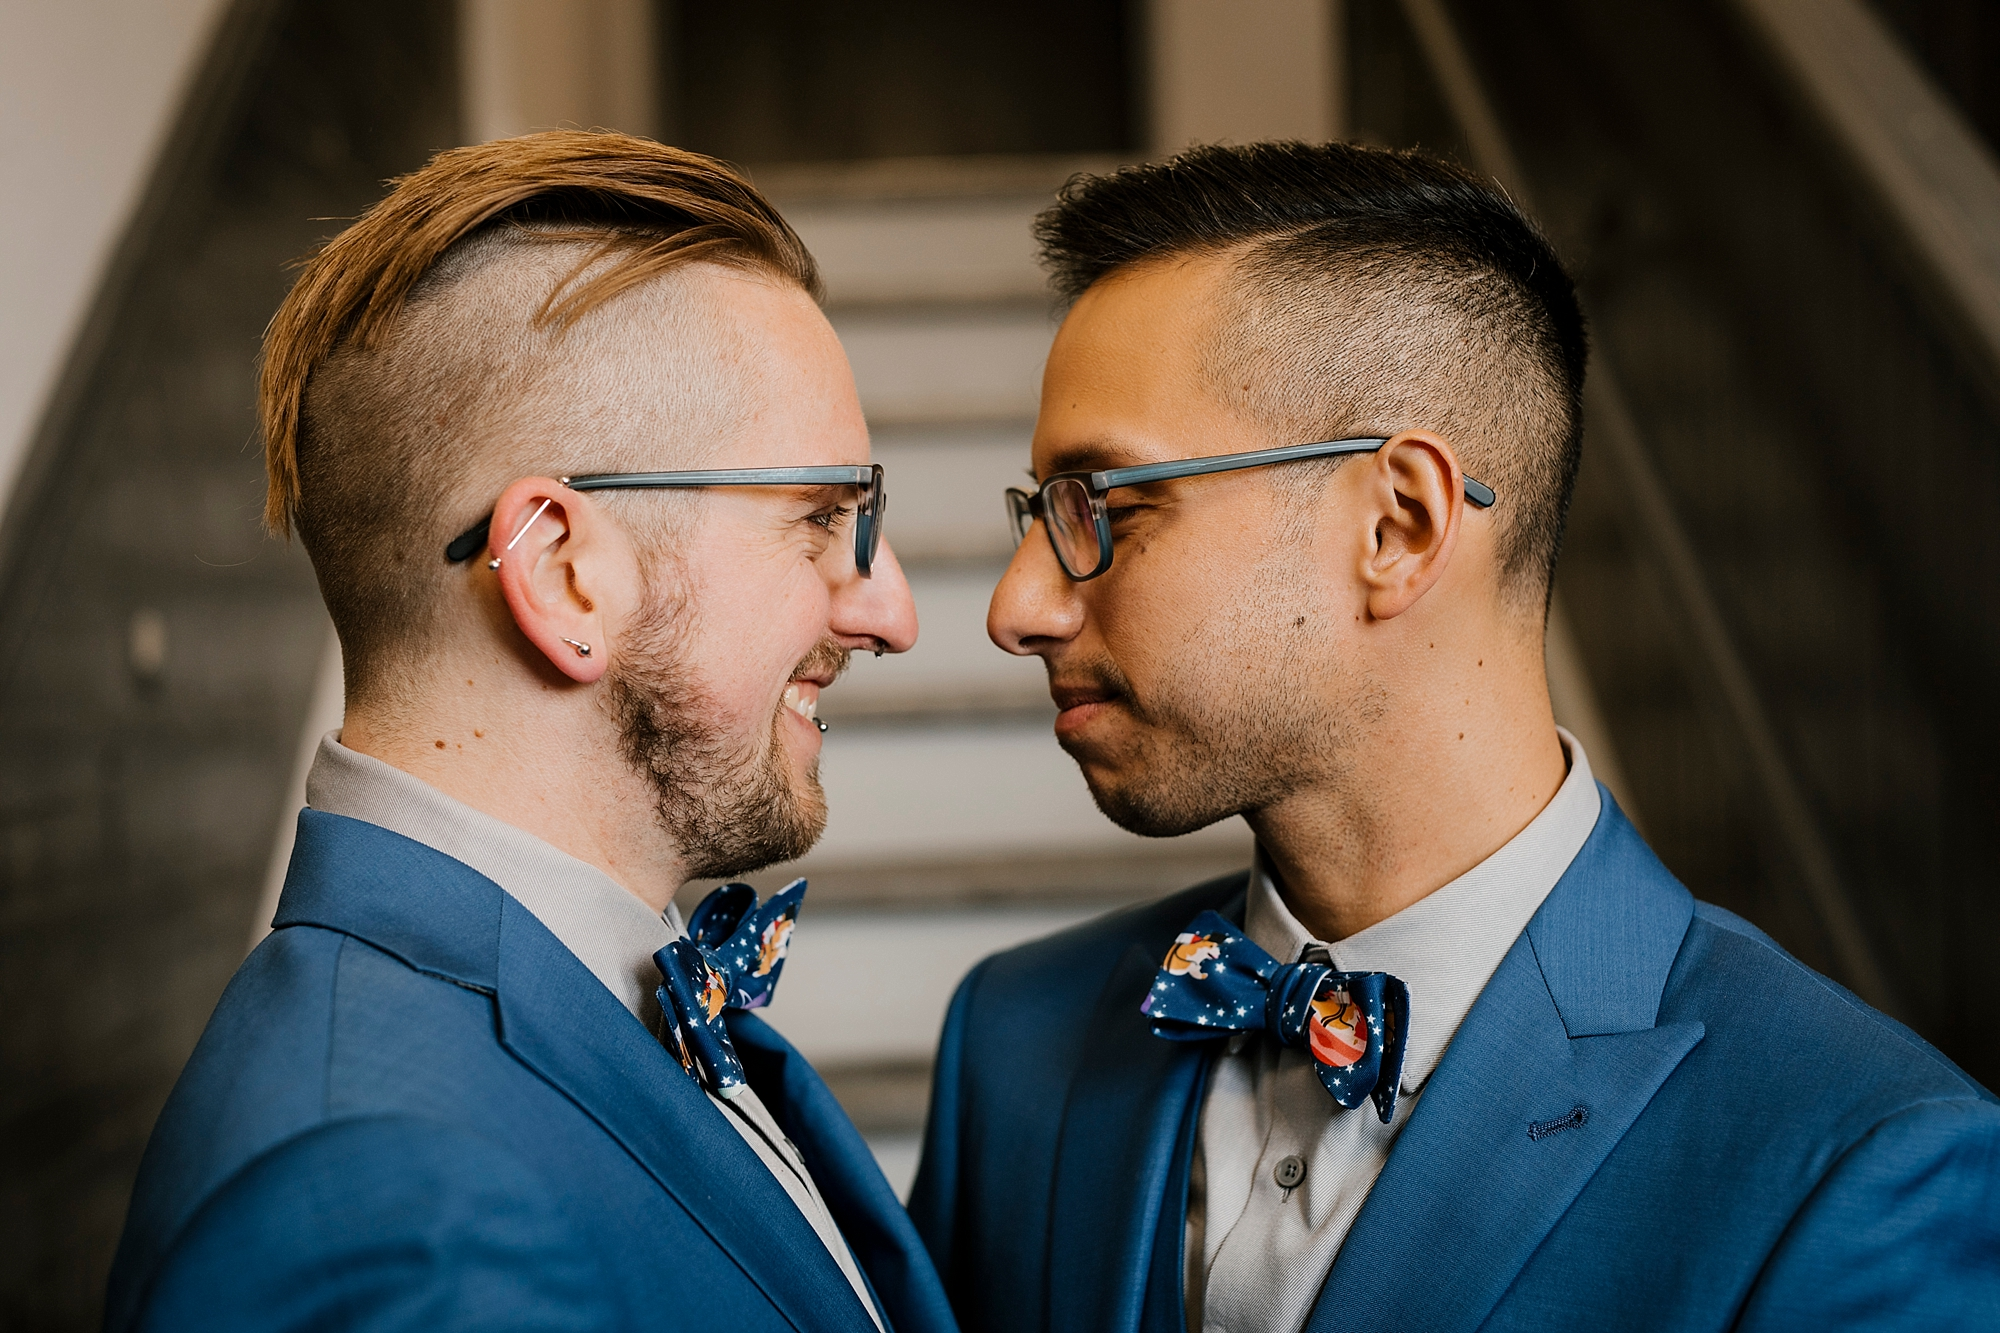 Joe_Mac_Creative_Philadelphia_Philly_LGBT_Gay_Engagement_Wedding_Photography__0103.jpg